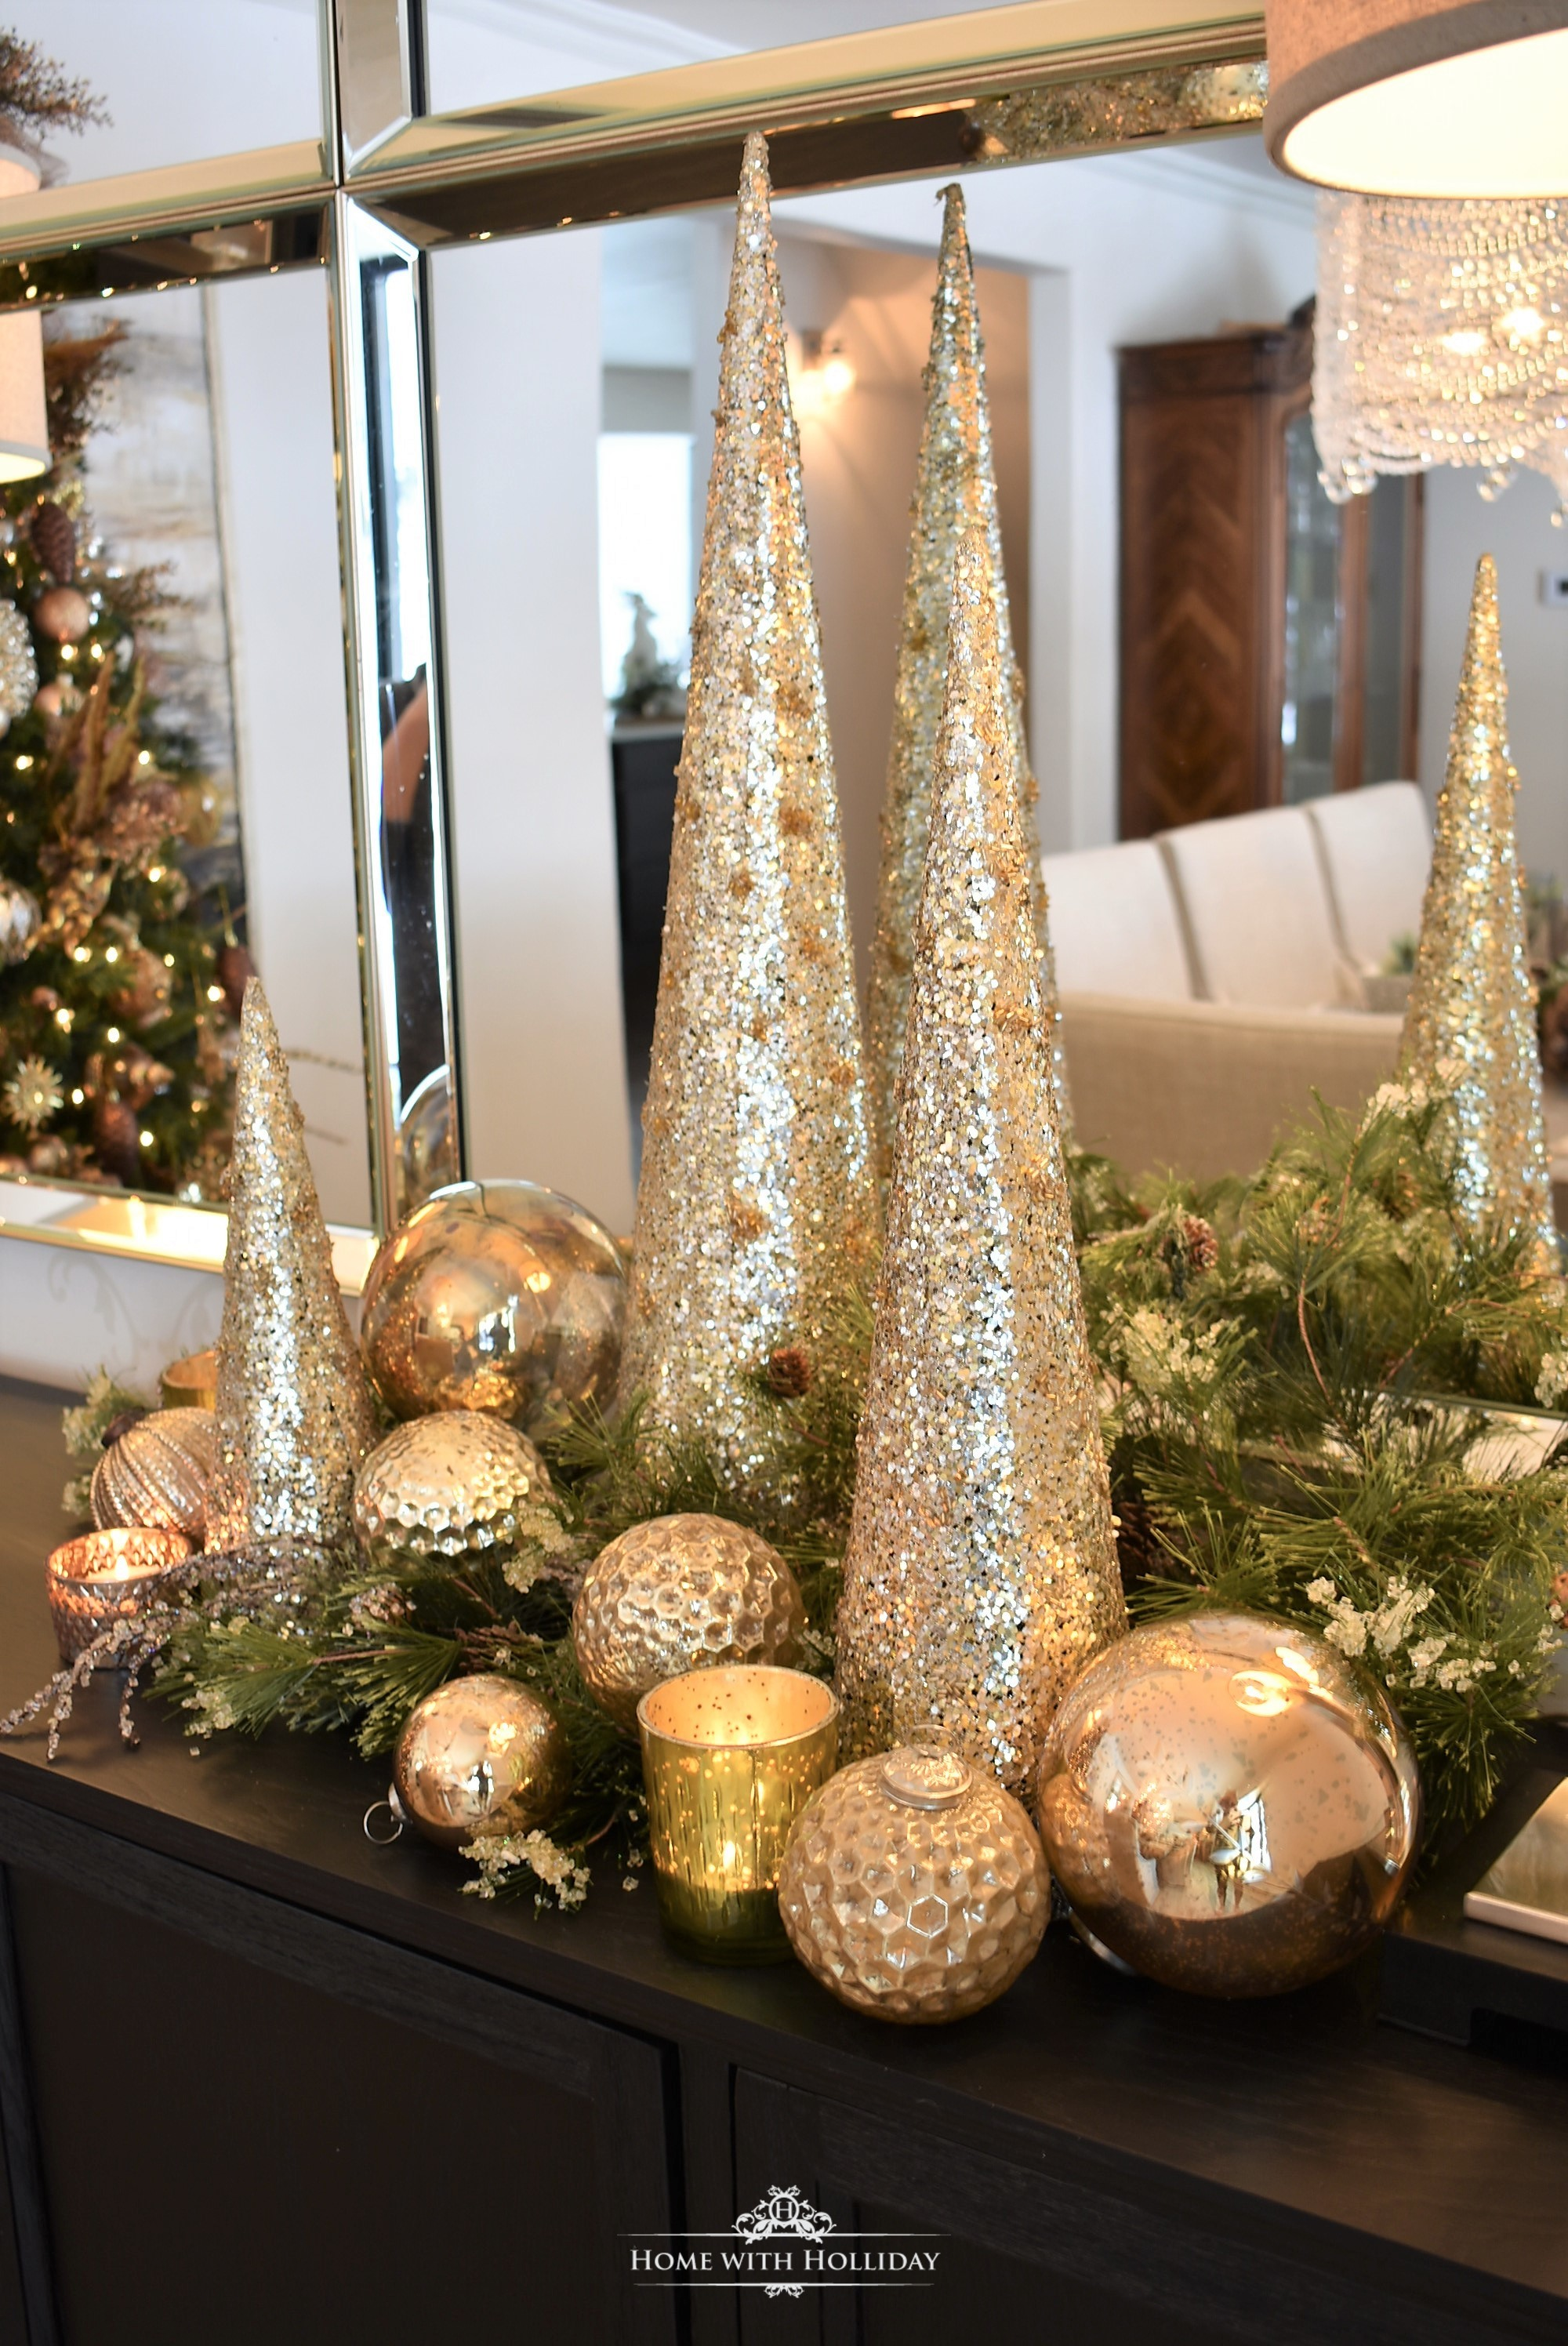 Inspiration for my Gold and Silver Snowflake Christmas Table Setting - Home with Holliday